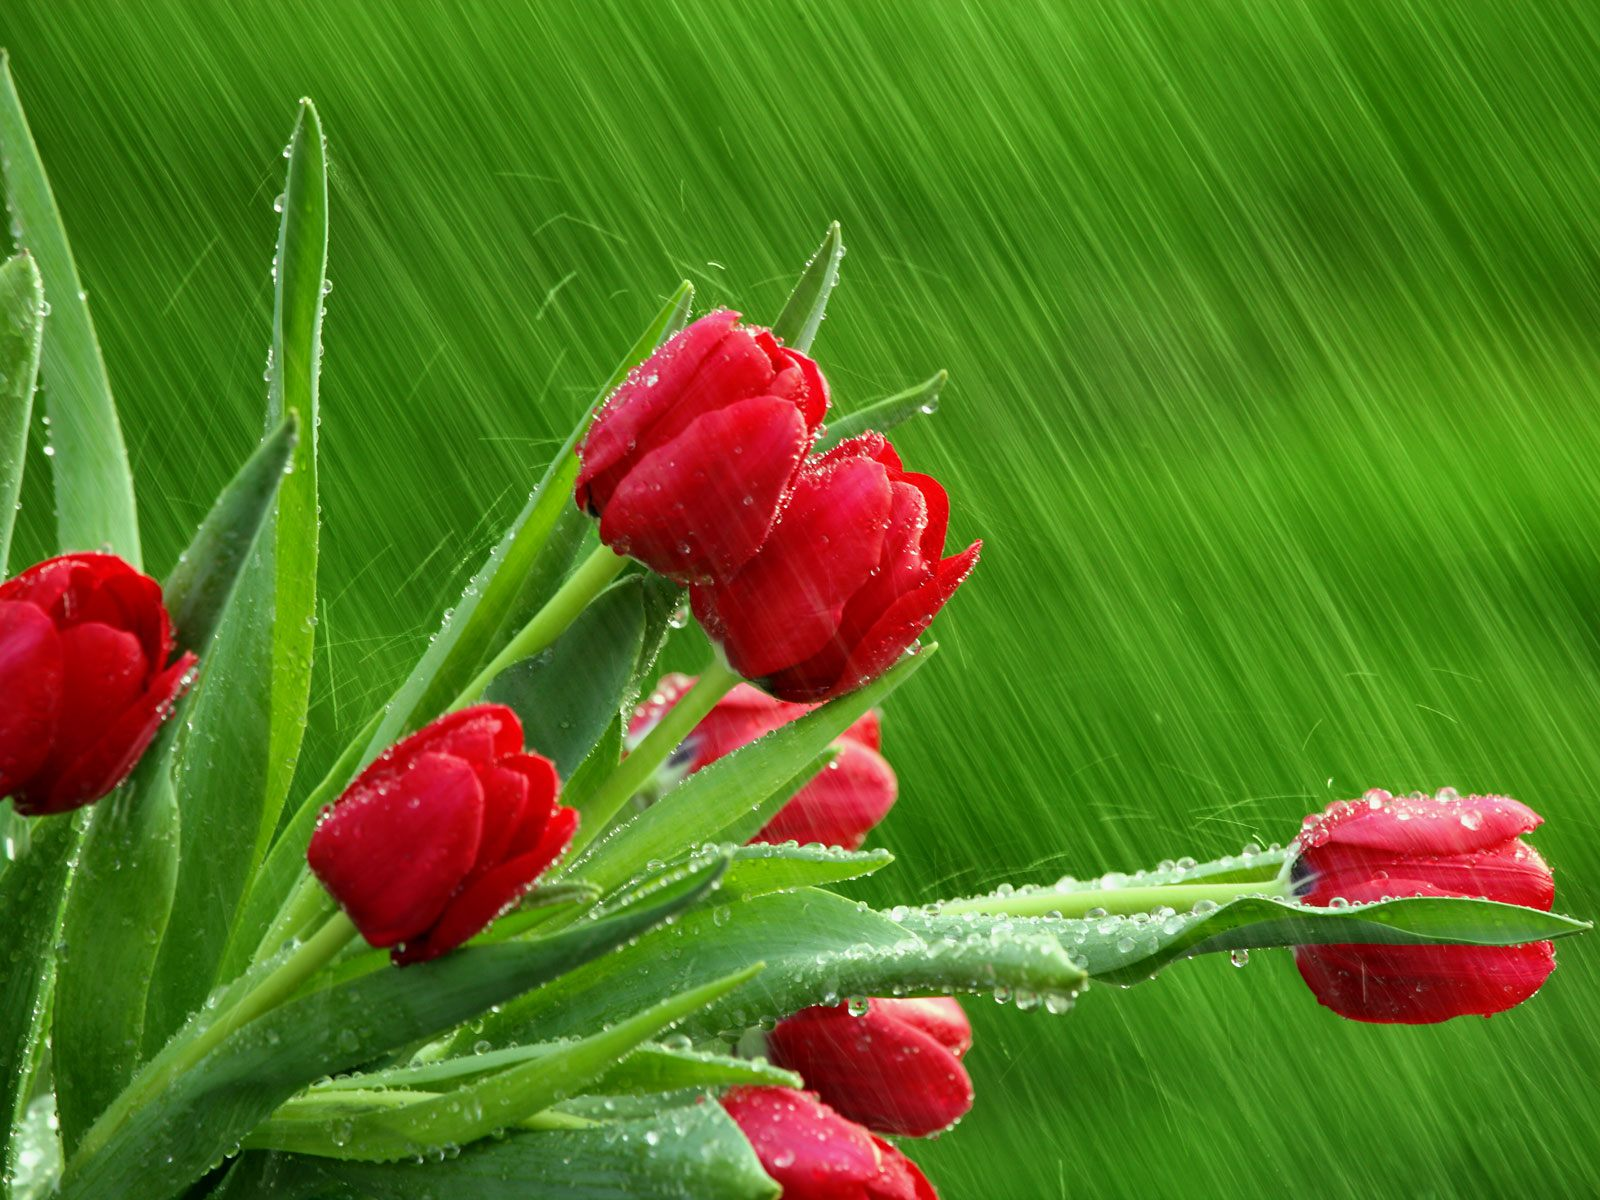 http://4.bp.blogspot.com/-KbuXVXiuvVk/TiwWfvrEaDI/AAAAAAAAAWA/d-rbOTVV8wE/s1600/Red+Tulips+Wallpapers+1.jpg